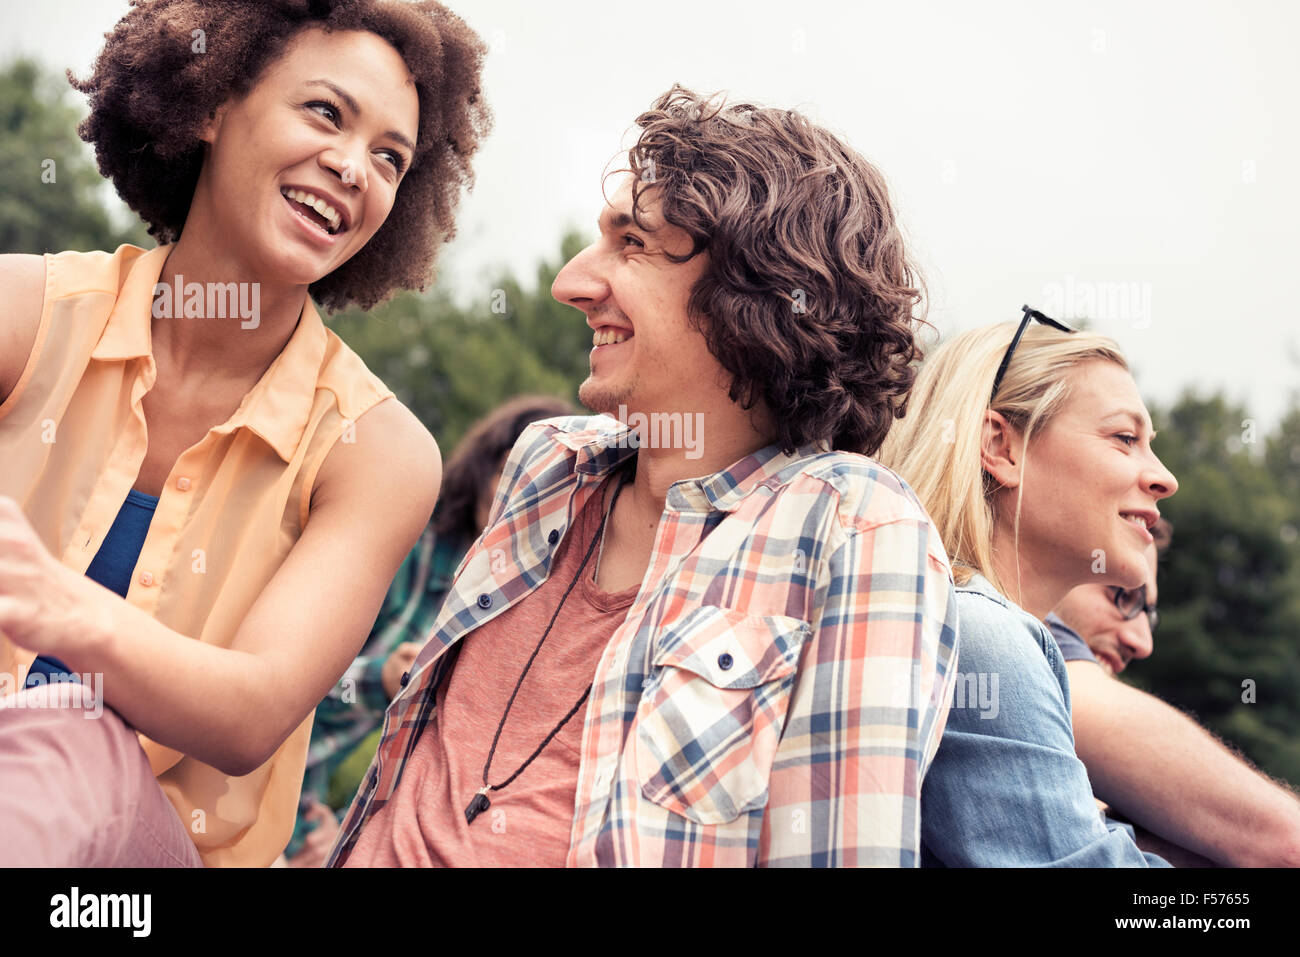 A young couple, a man and woman among others outdoors in the countryside. - Stock Image